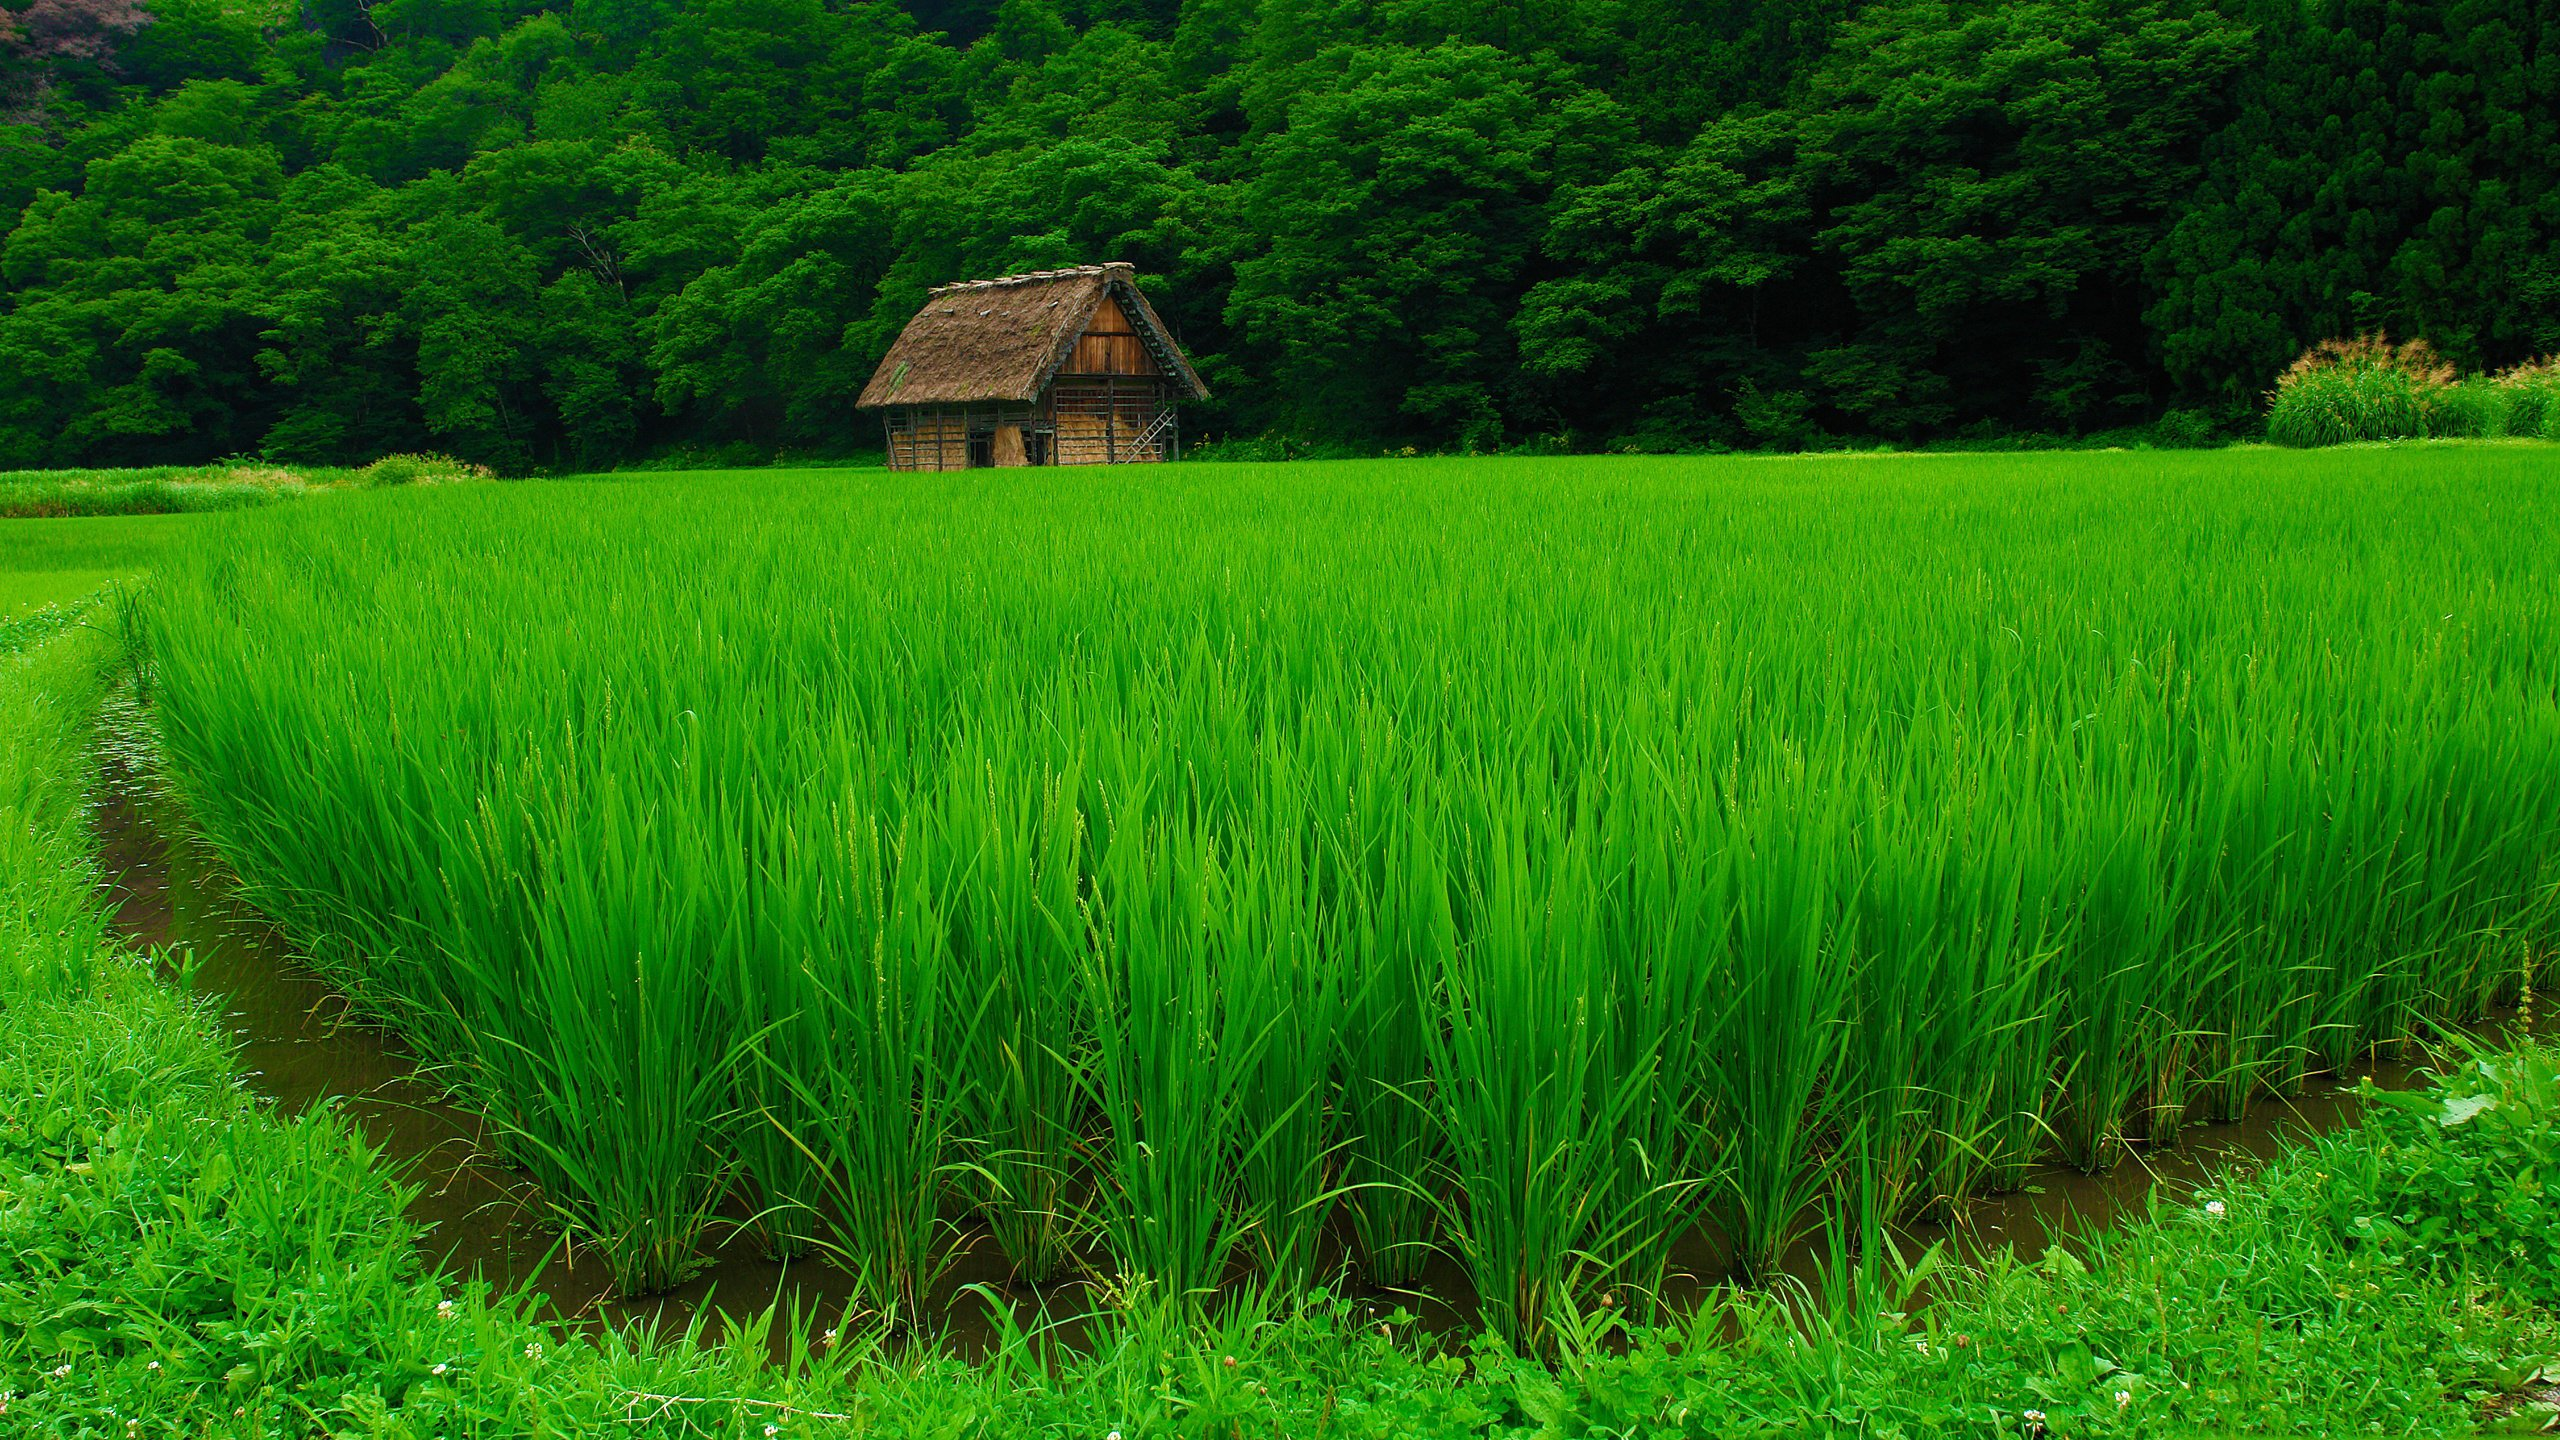 Beautiful View Of Farm House With Greenery wallpaper